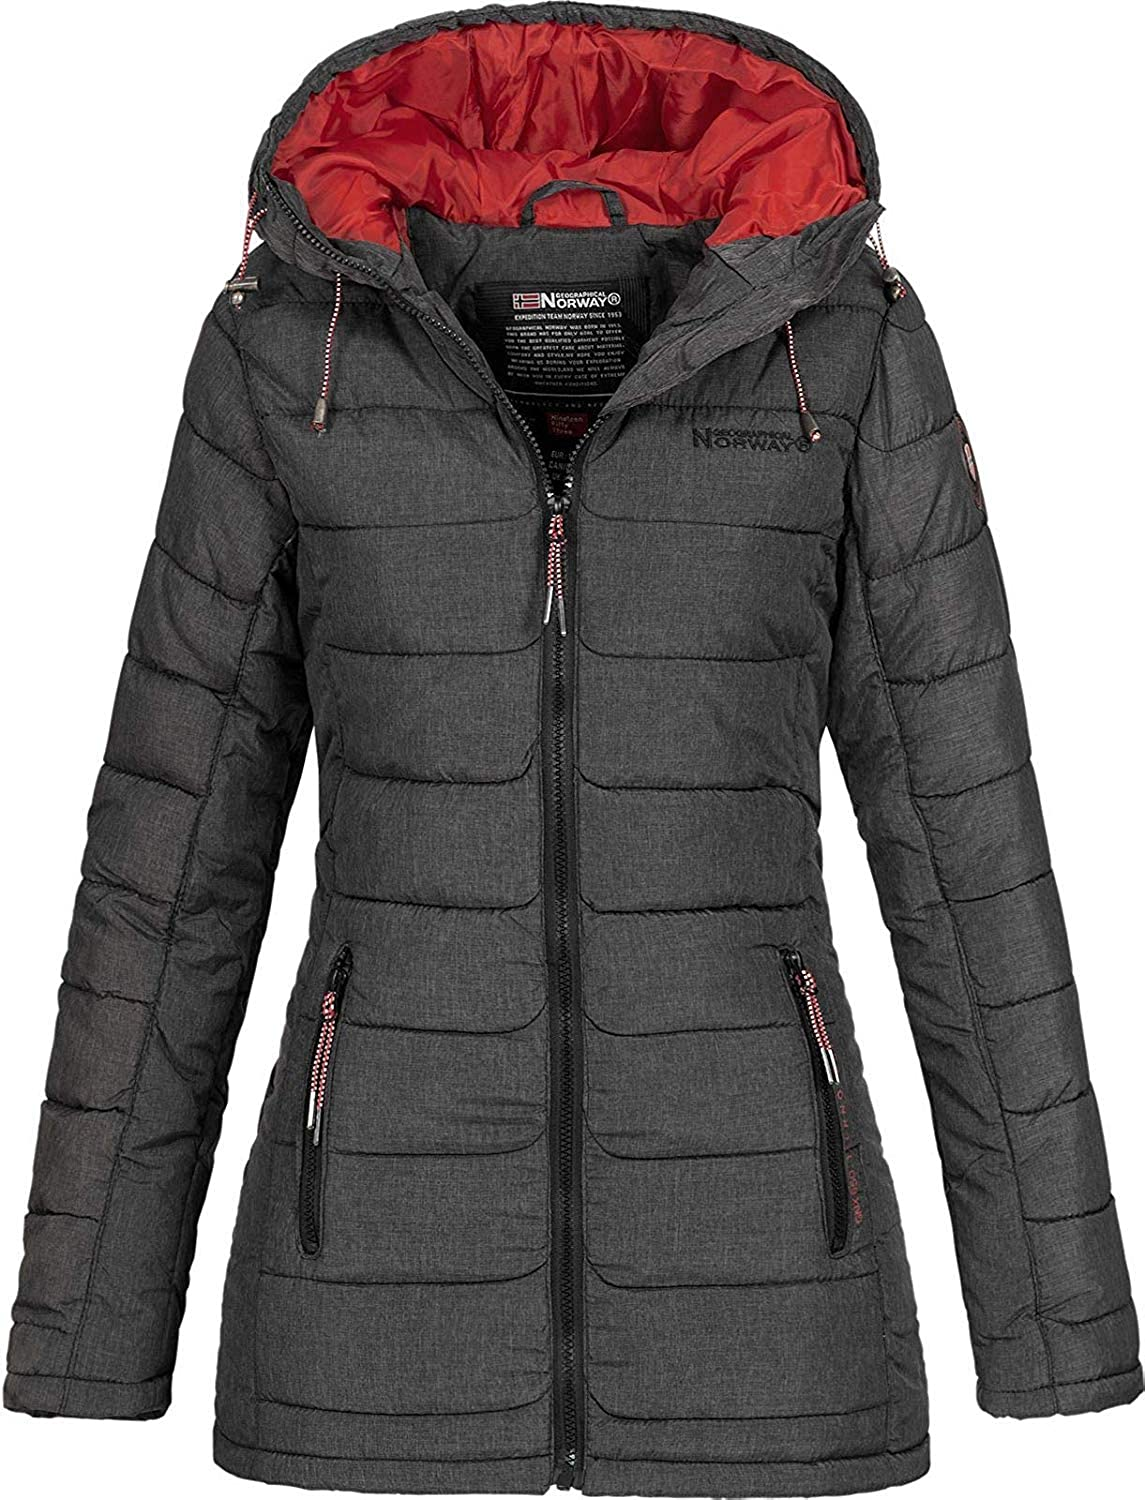 Geographical Norway Astana - Parka con capucha para mujer